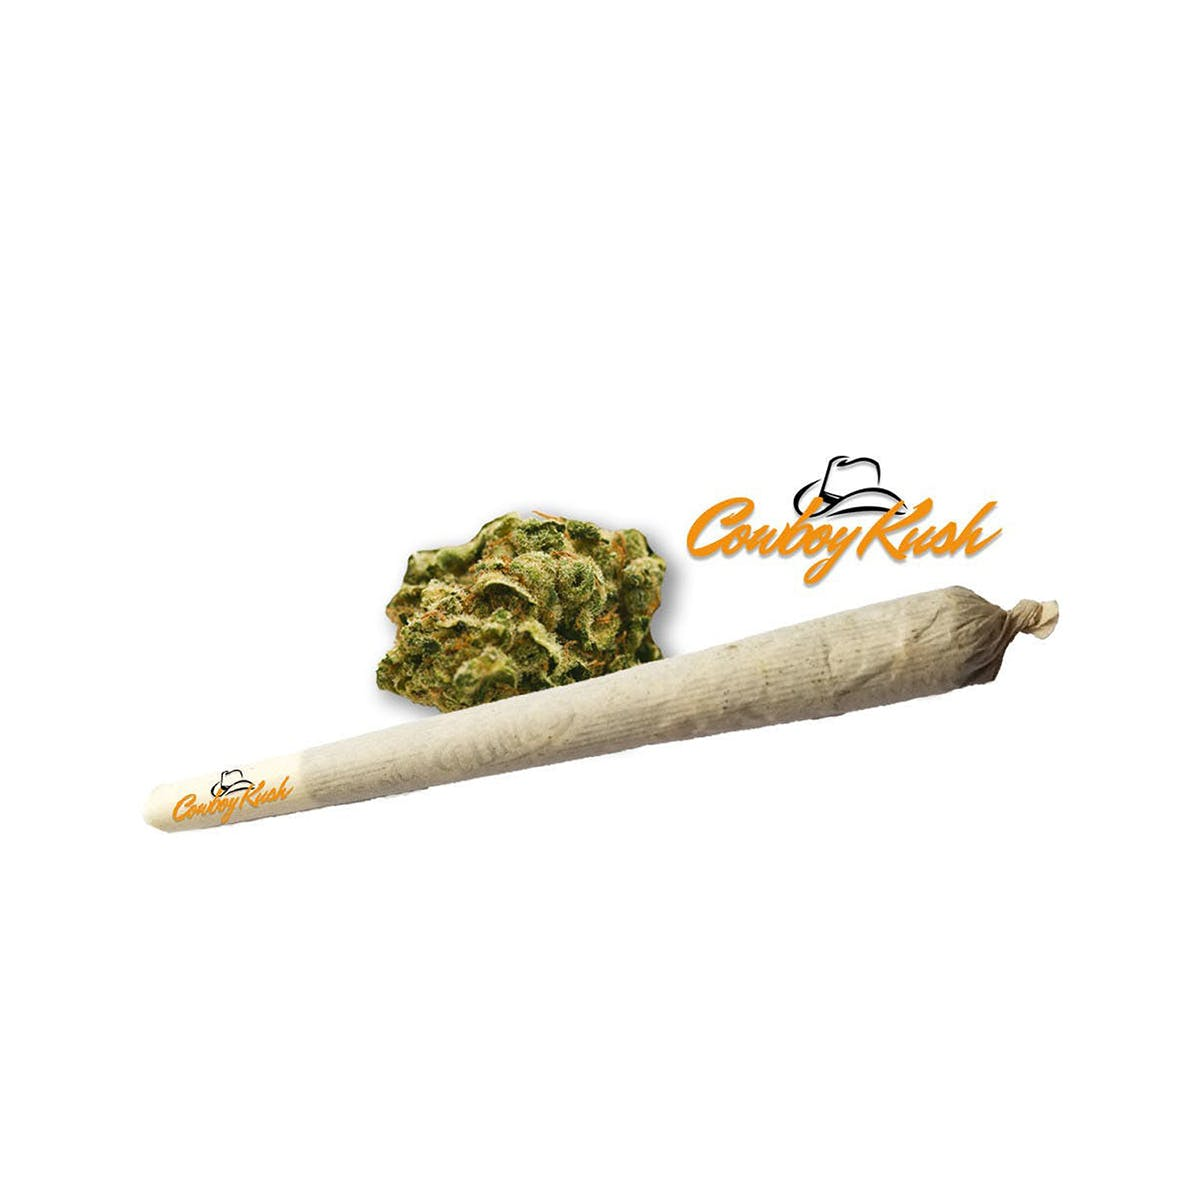 marijuana-dispensaries-rar-dispensary-now-open-21-in-stillwater-cowboy-kush-pre-roll